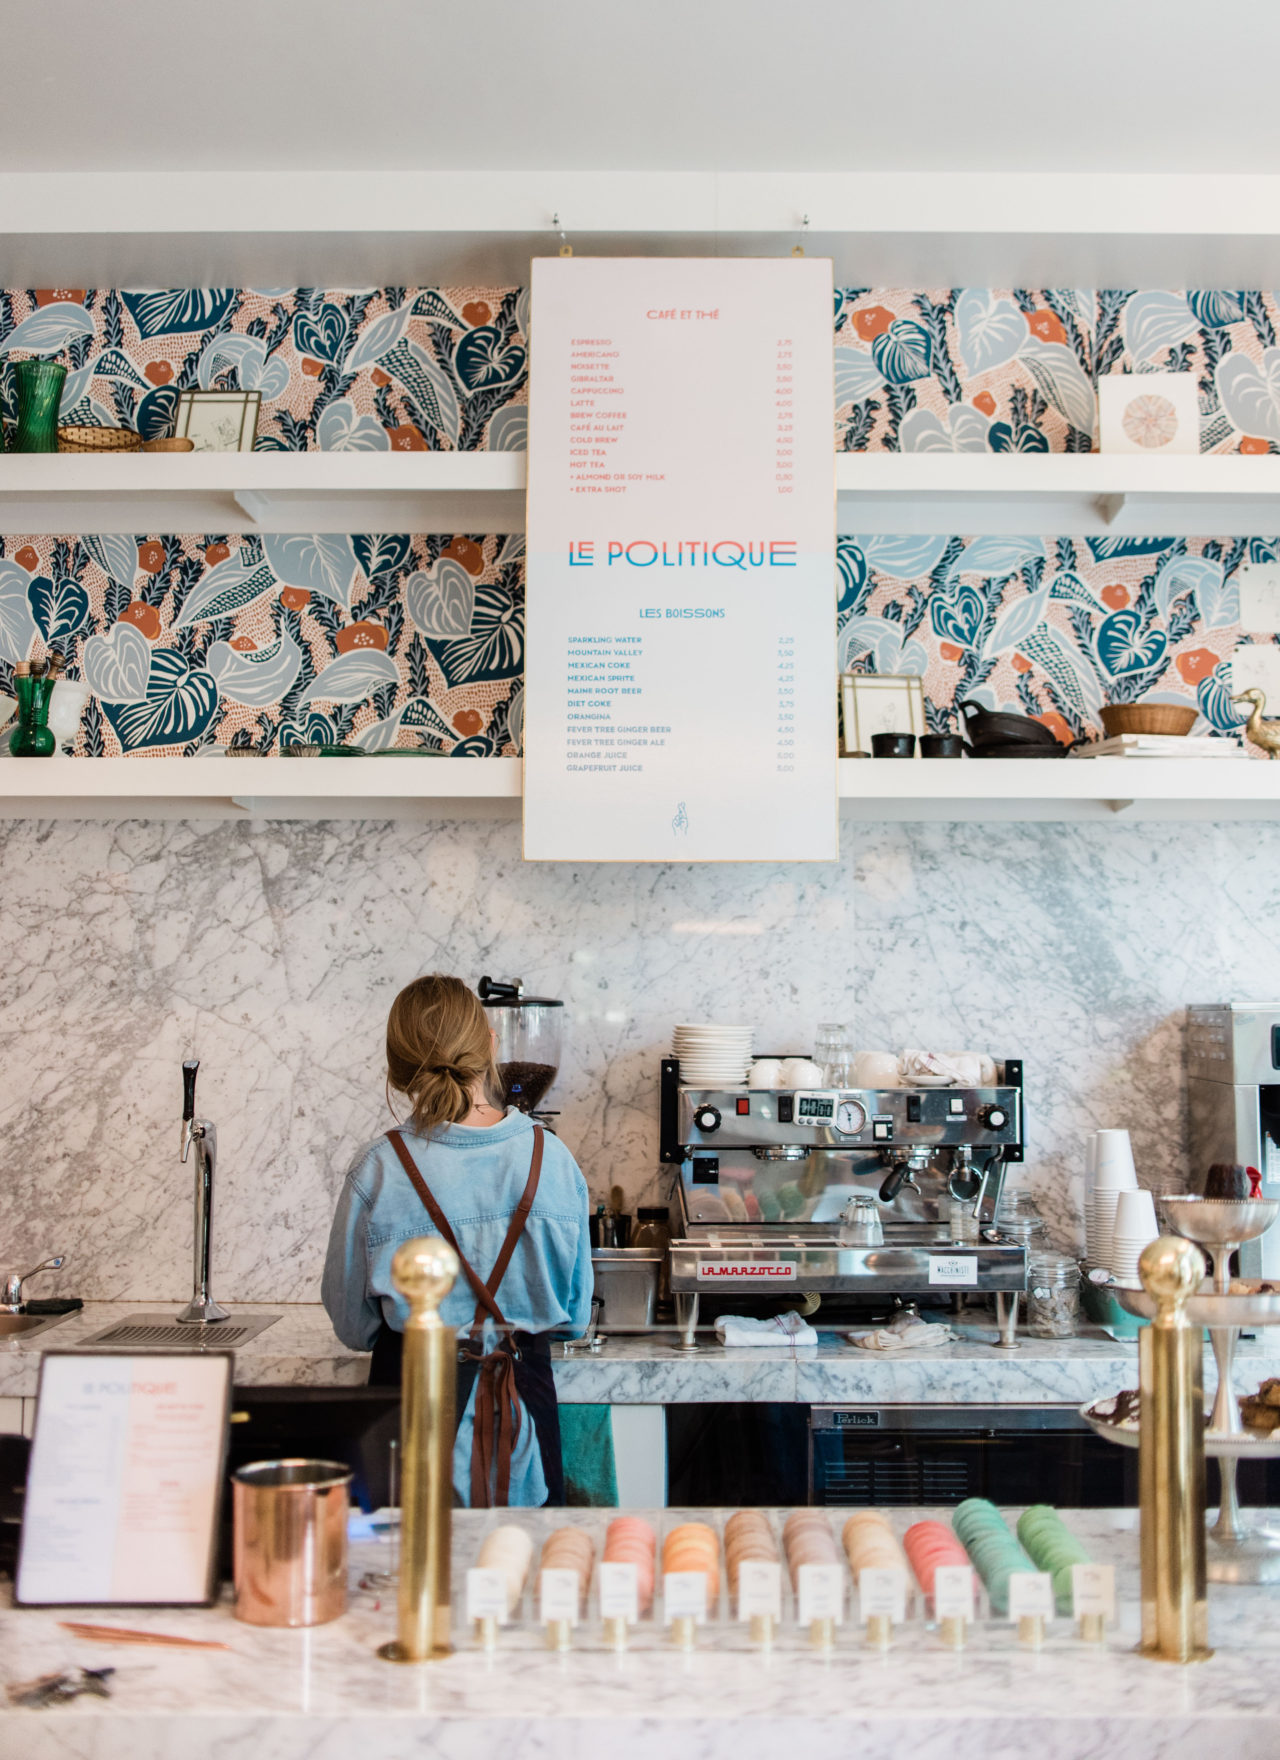 20 Of The Most Instagrammable Coffee Shops, Bars, & Restaurants In Austin